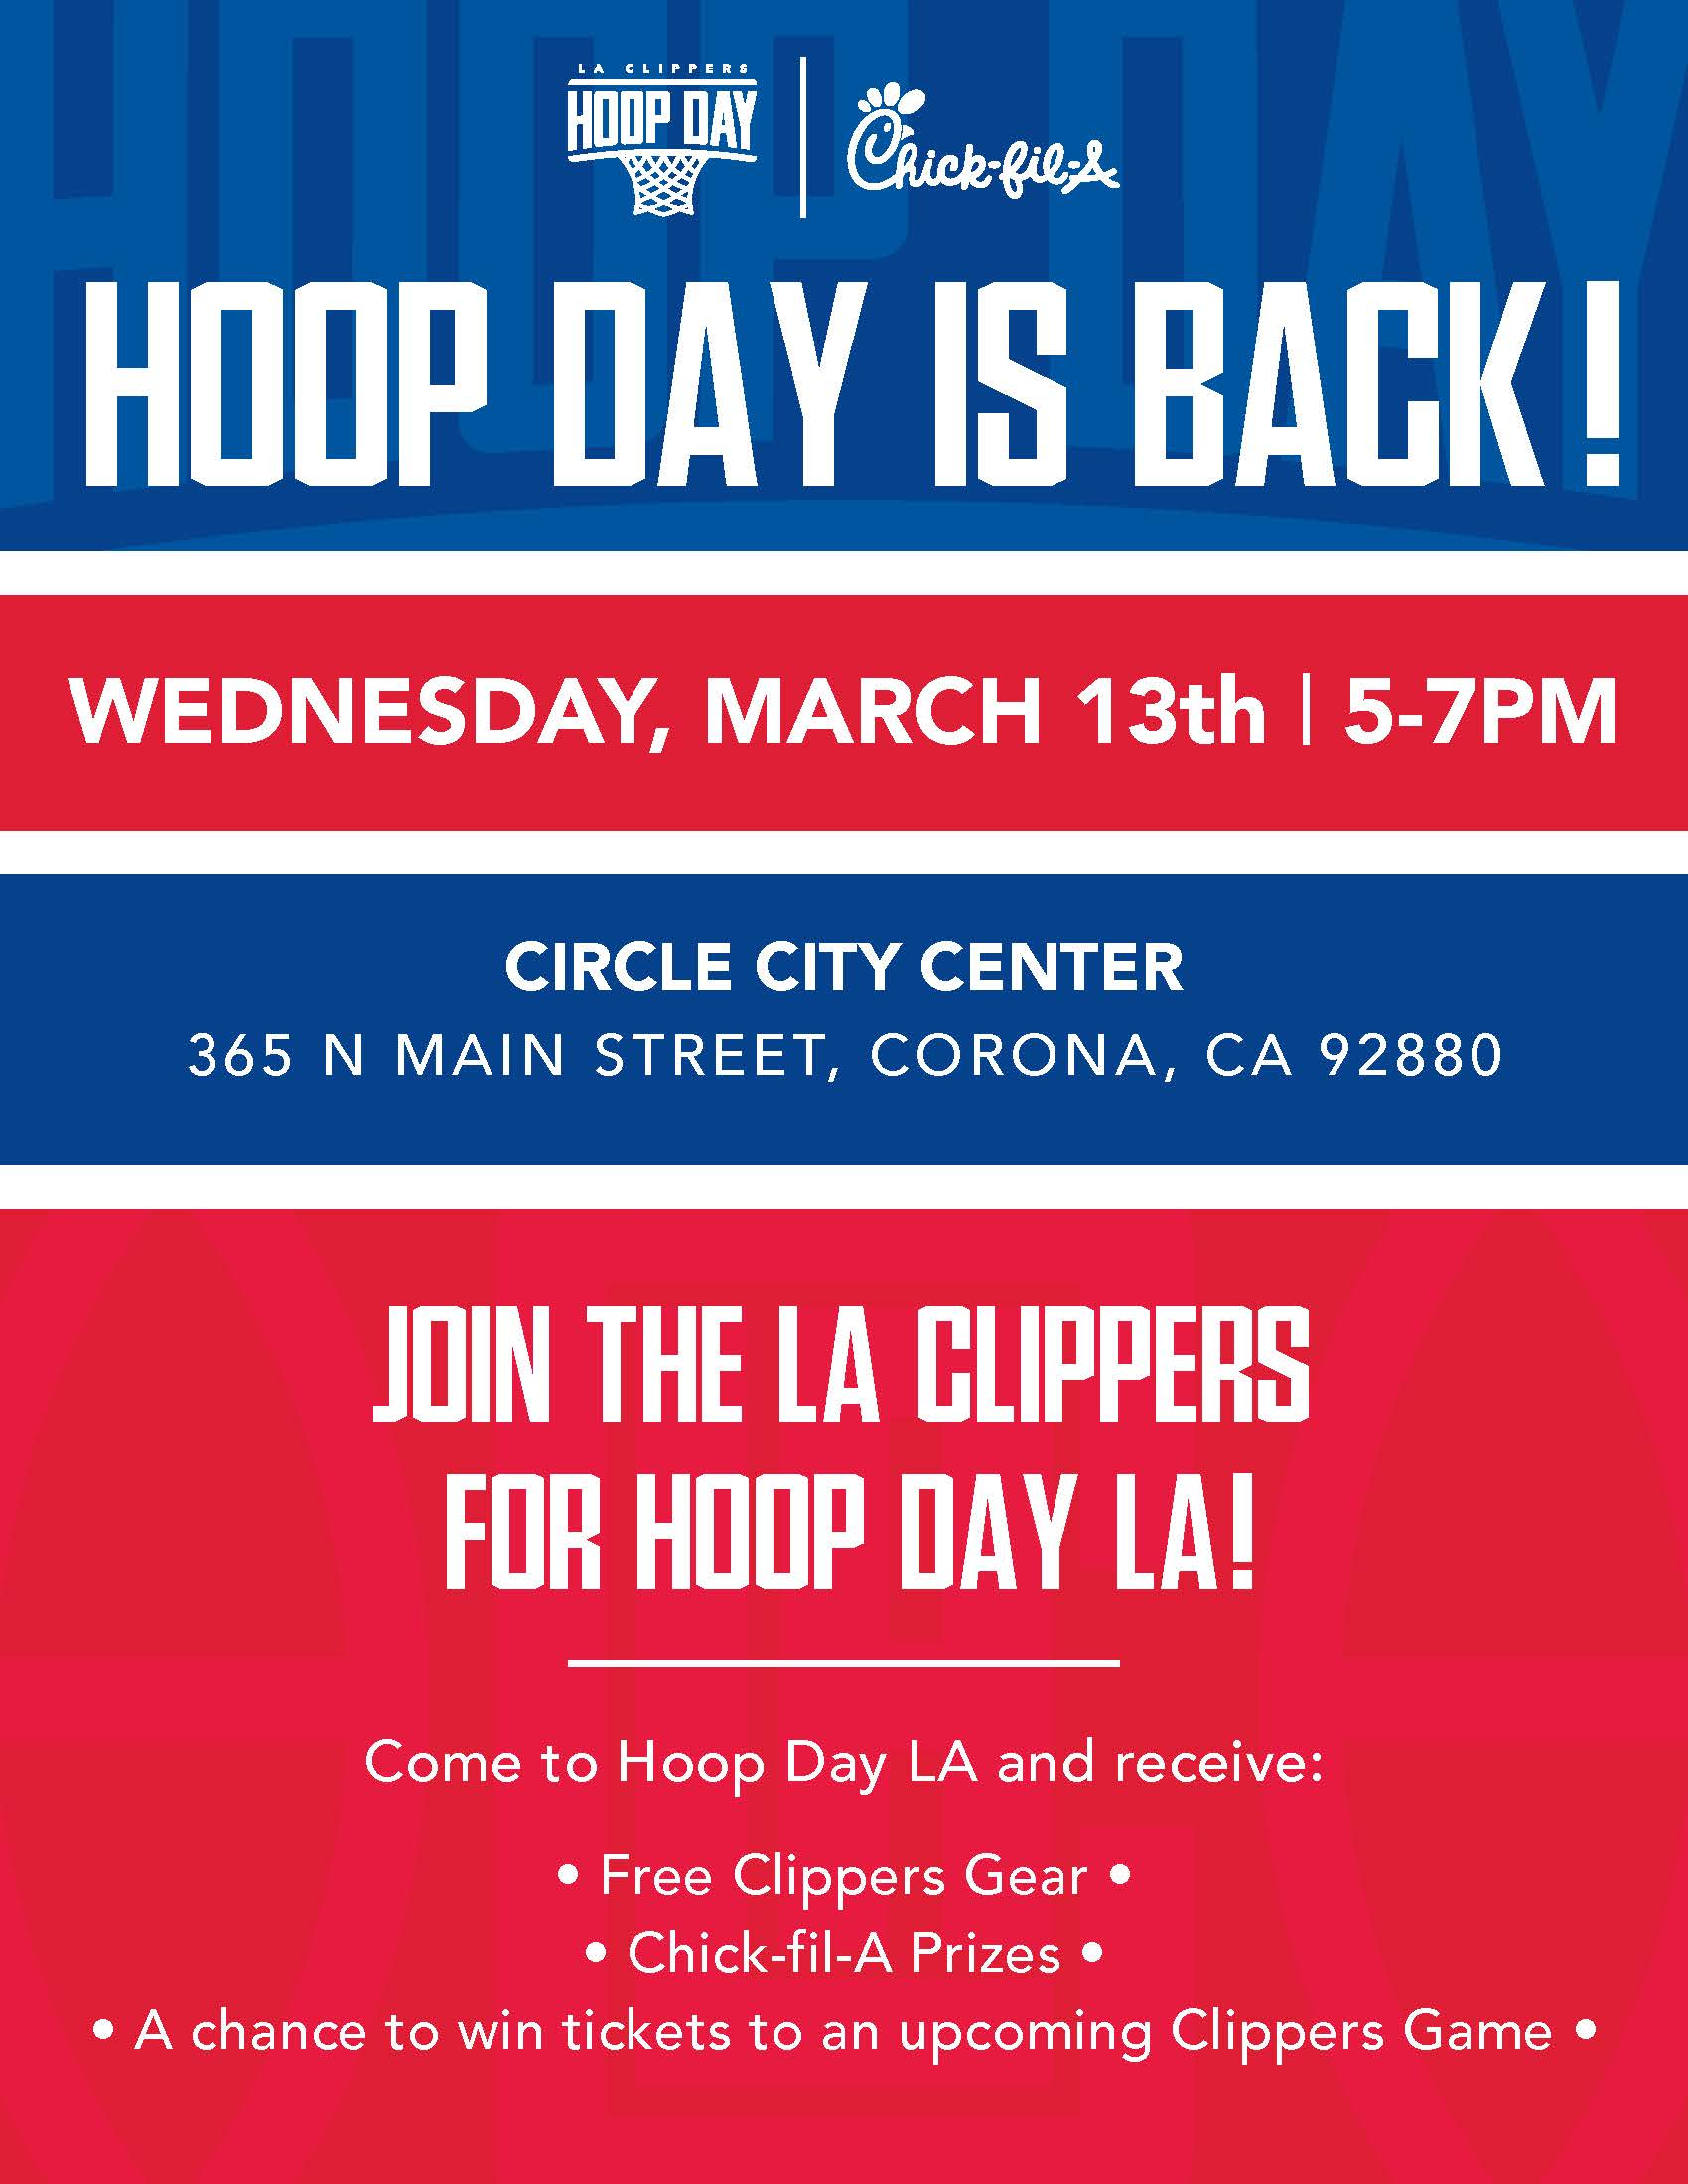 Hoop Day Activation at Circle City Center